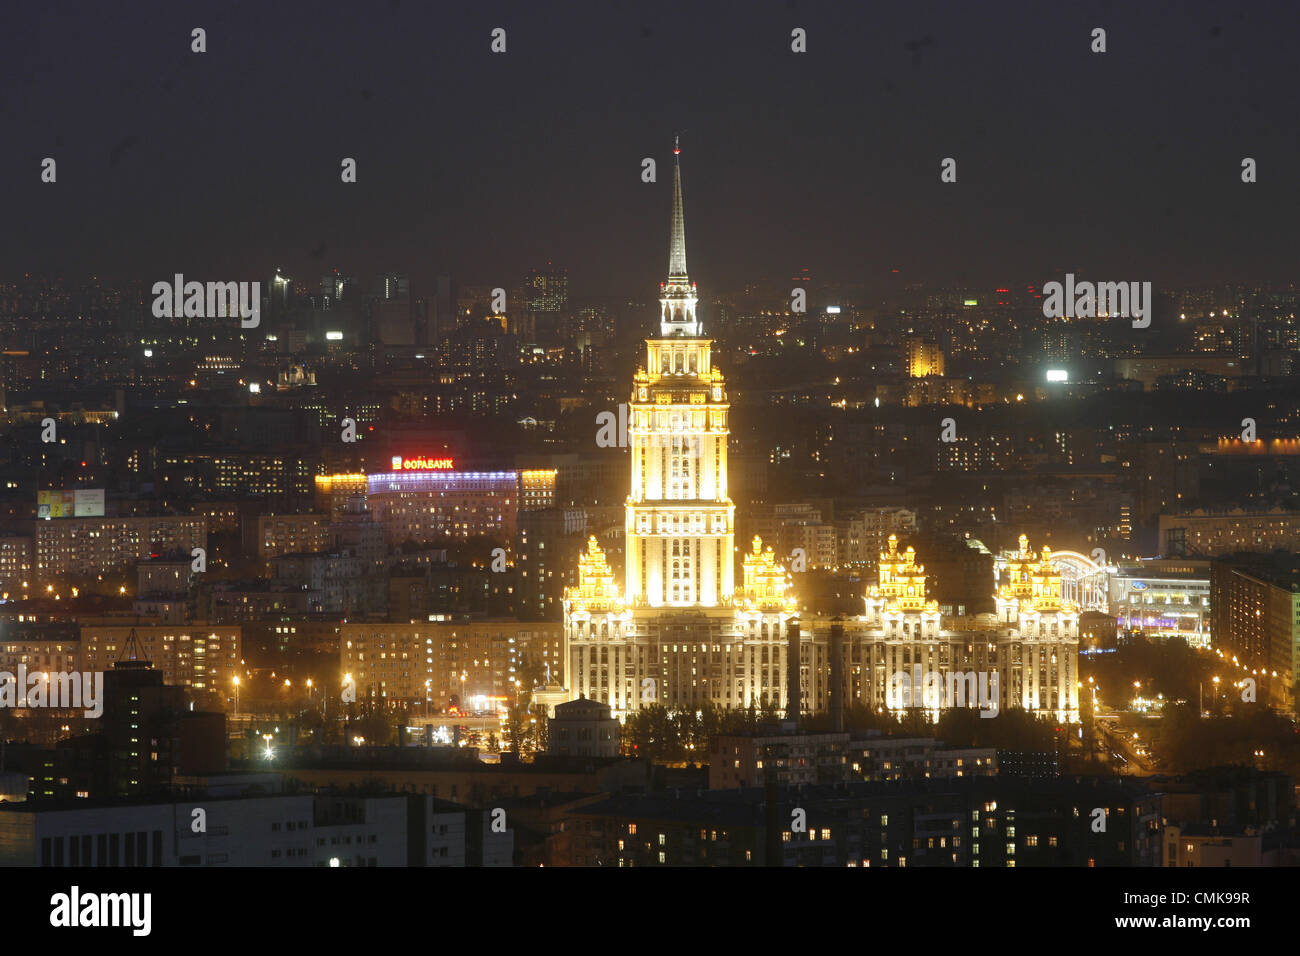 Oct. 24, 2010 - Moscow, Russia - Stalinist architecture (Stalin's Empire style or Stalin's Neo-renaissance), also Stock Photo